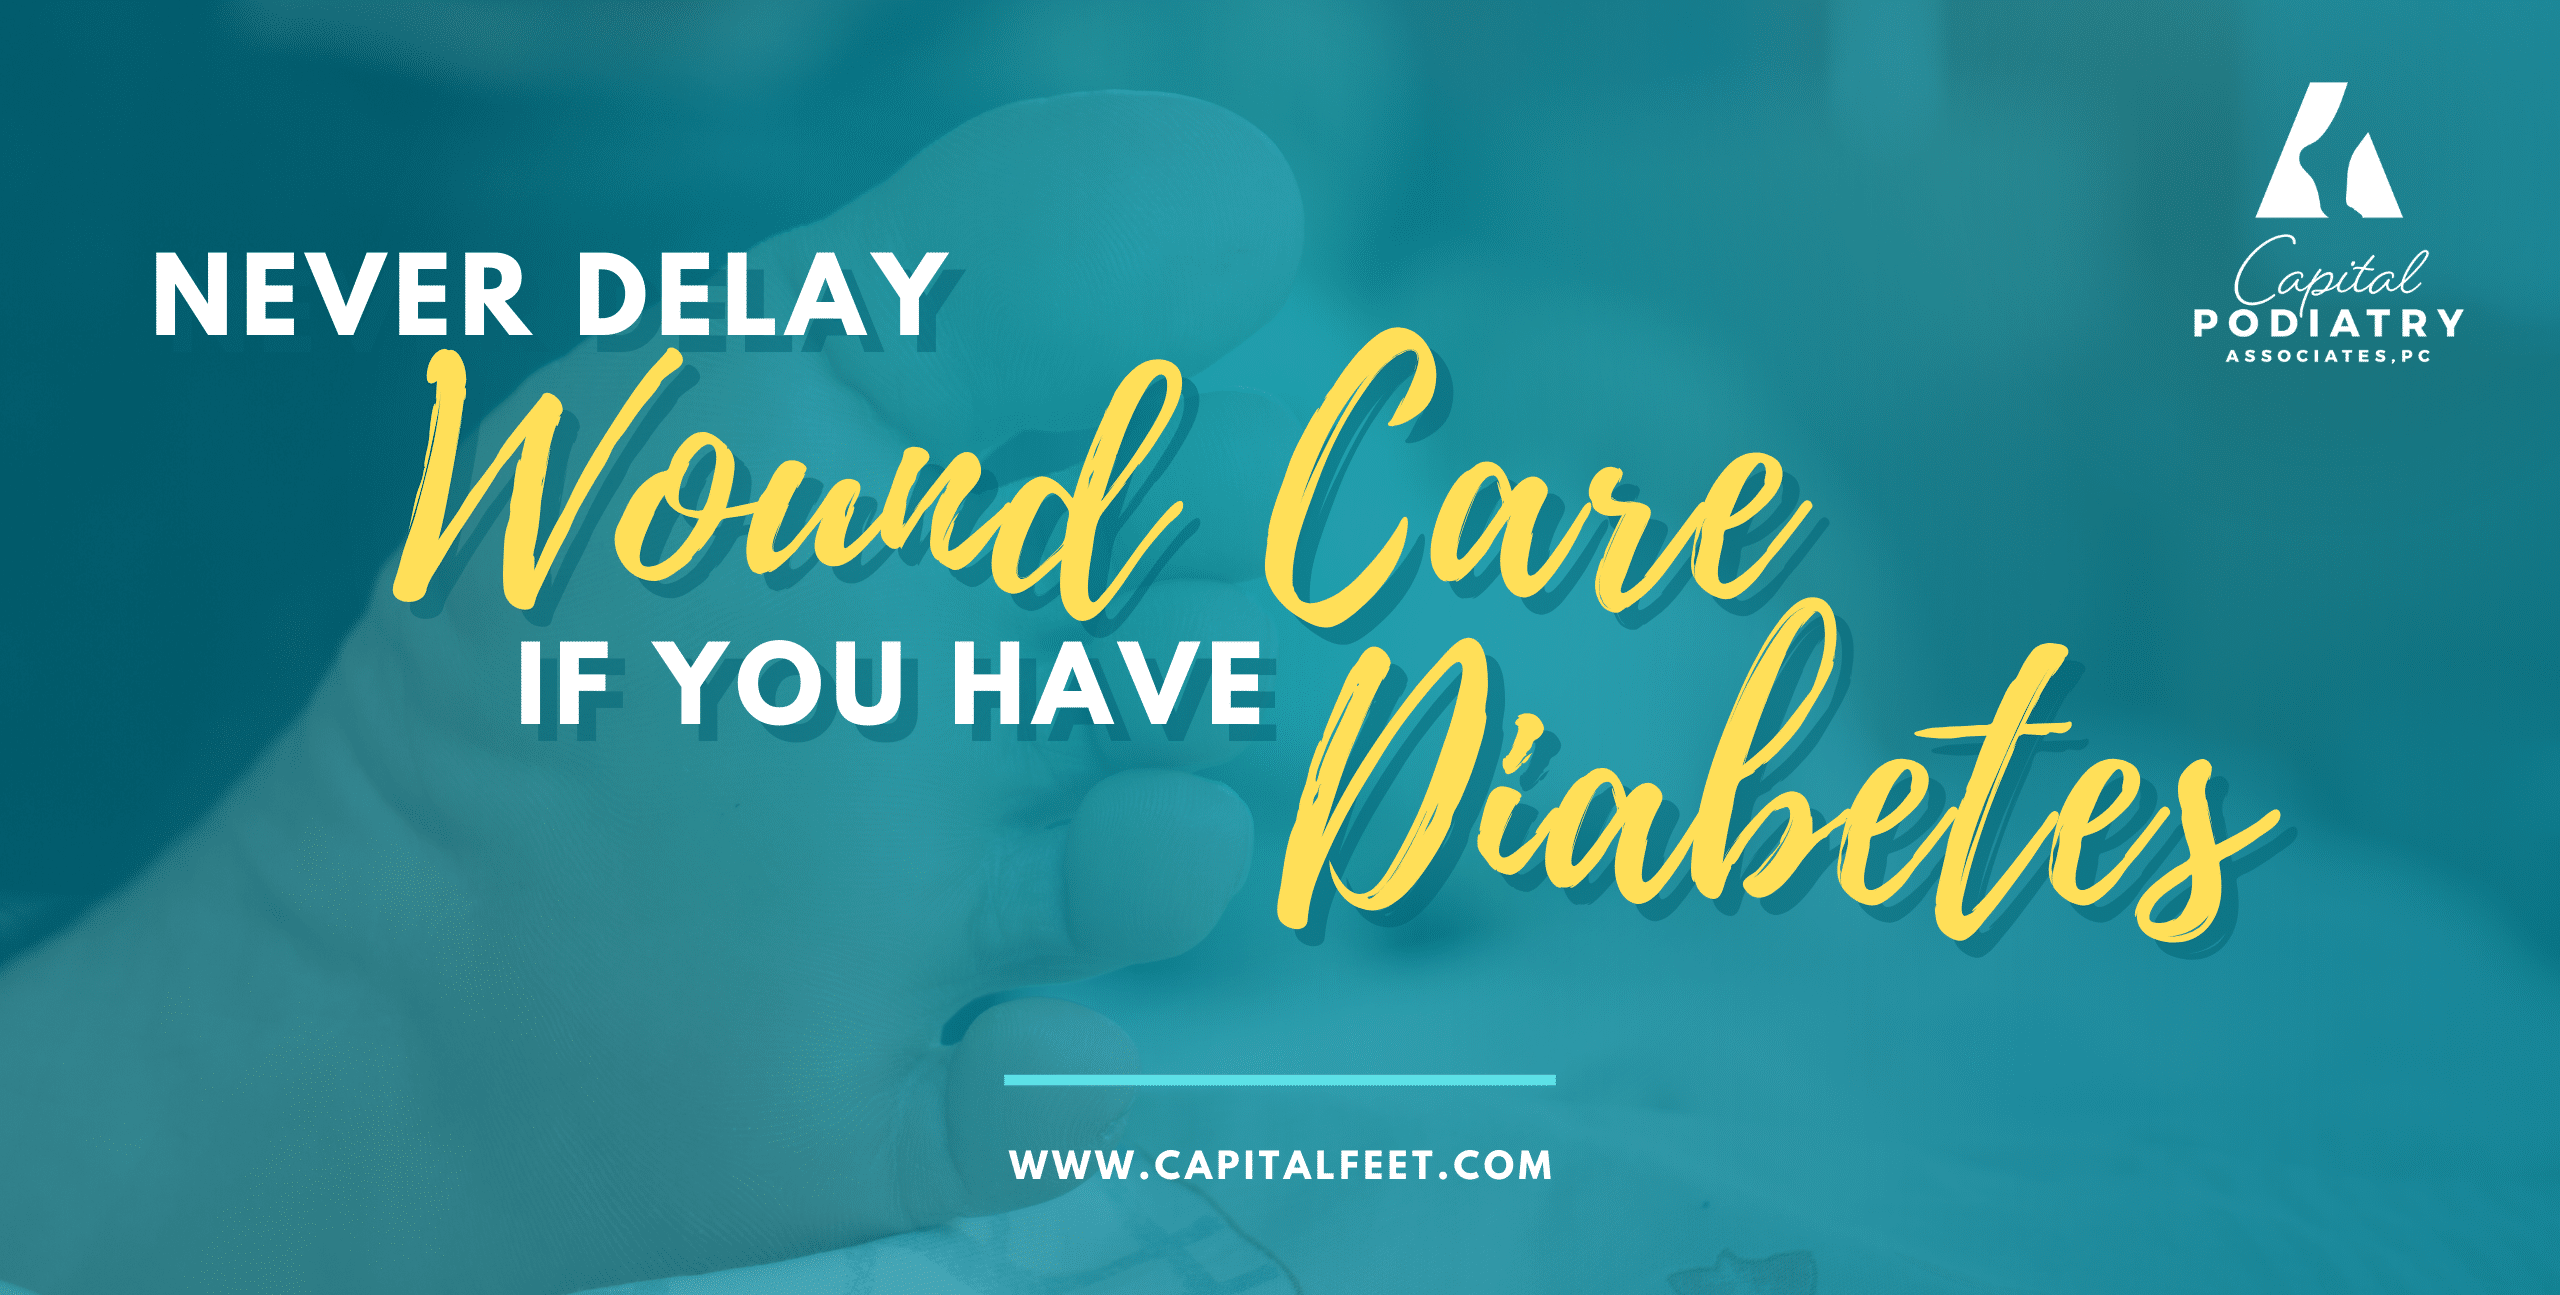 Never delay wound care if you have diabetes